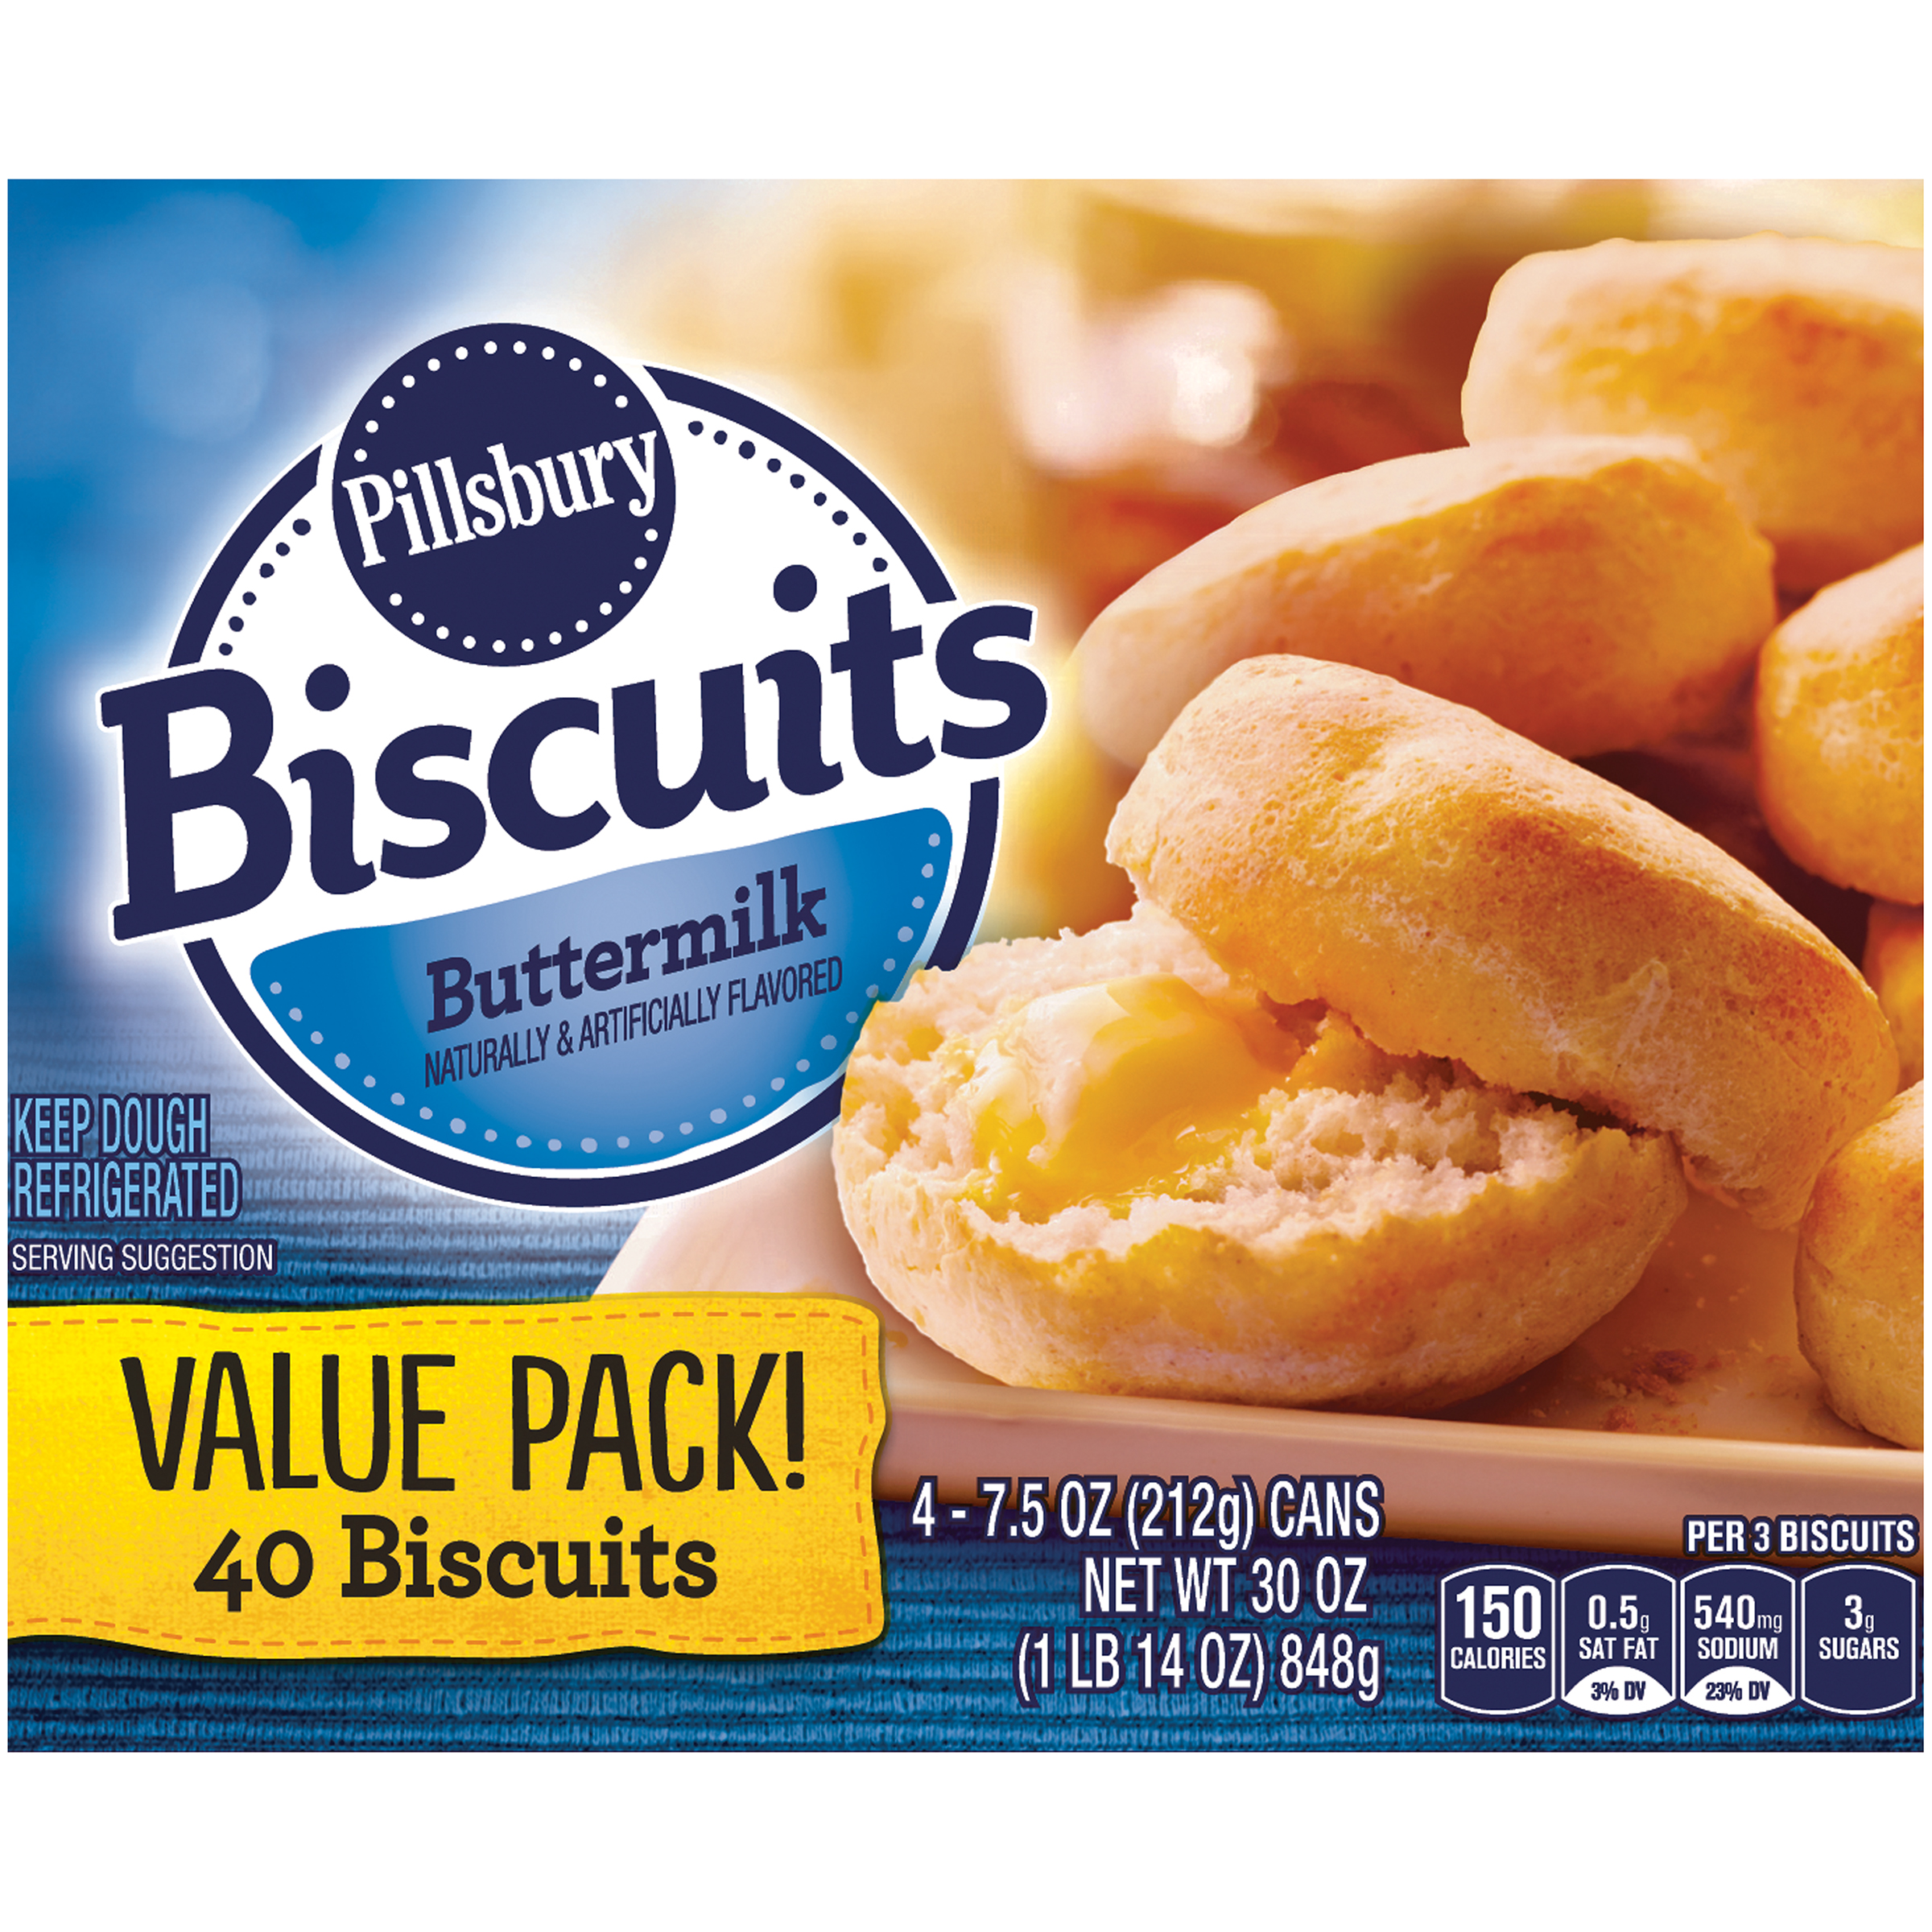 Jul 30,  · An easy gluten-free biscuits recipe made Southern style with buttermilk. Flaky and tender. With a dairy-free option. So it was time for me to get in the kitchen and work on a gluten-free Southern buttermilk biscuit recipe. Recipe Notes. I like Pillsbury gluten-free flour.5/5(9).